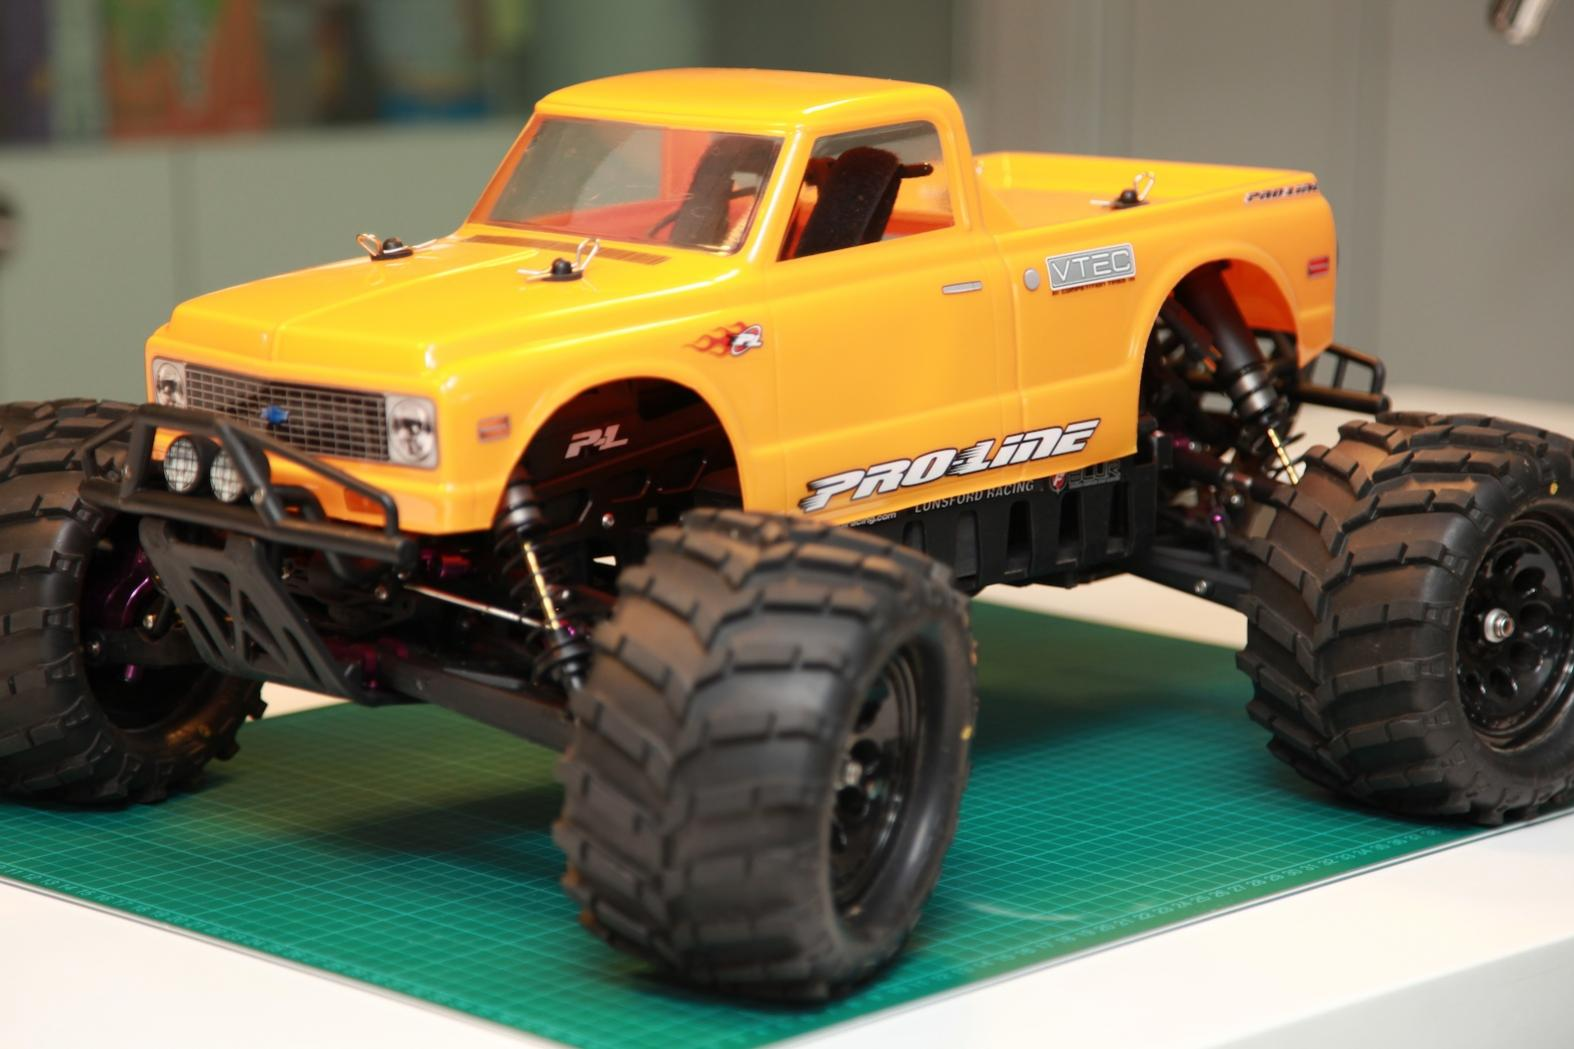 Monster Truck For Sale >> WTS: ARTR Fully-mod HPI Savage Flux 1/8 Scale Monster Truck– Low mileage+Never track - R/C Tech ...